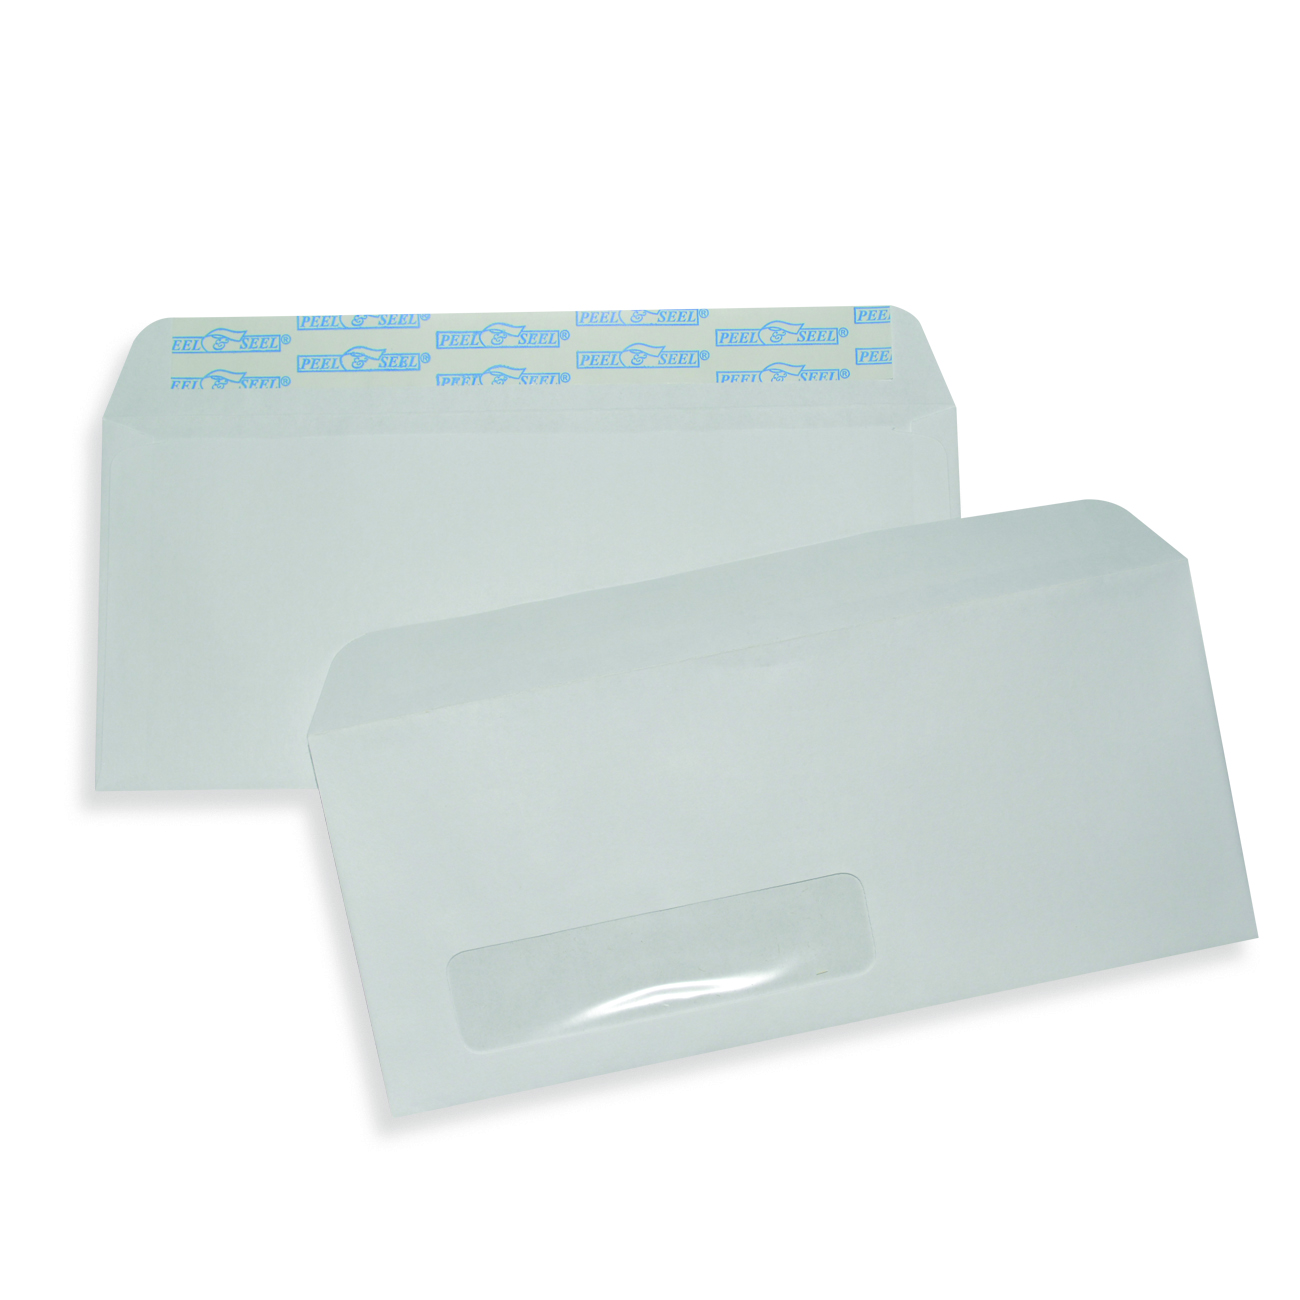 "White Wove Business Envelopes 4 1/8"" x 9 1/2"", #10, 24 lb. White Wove Commercial Envelope, Single Window, Pull & Close,5 00/BX"